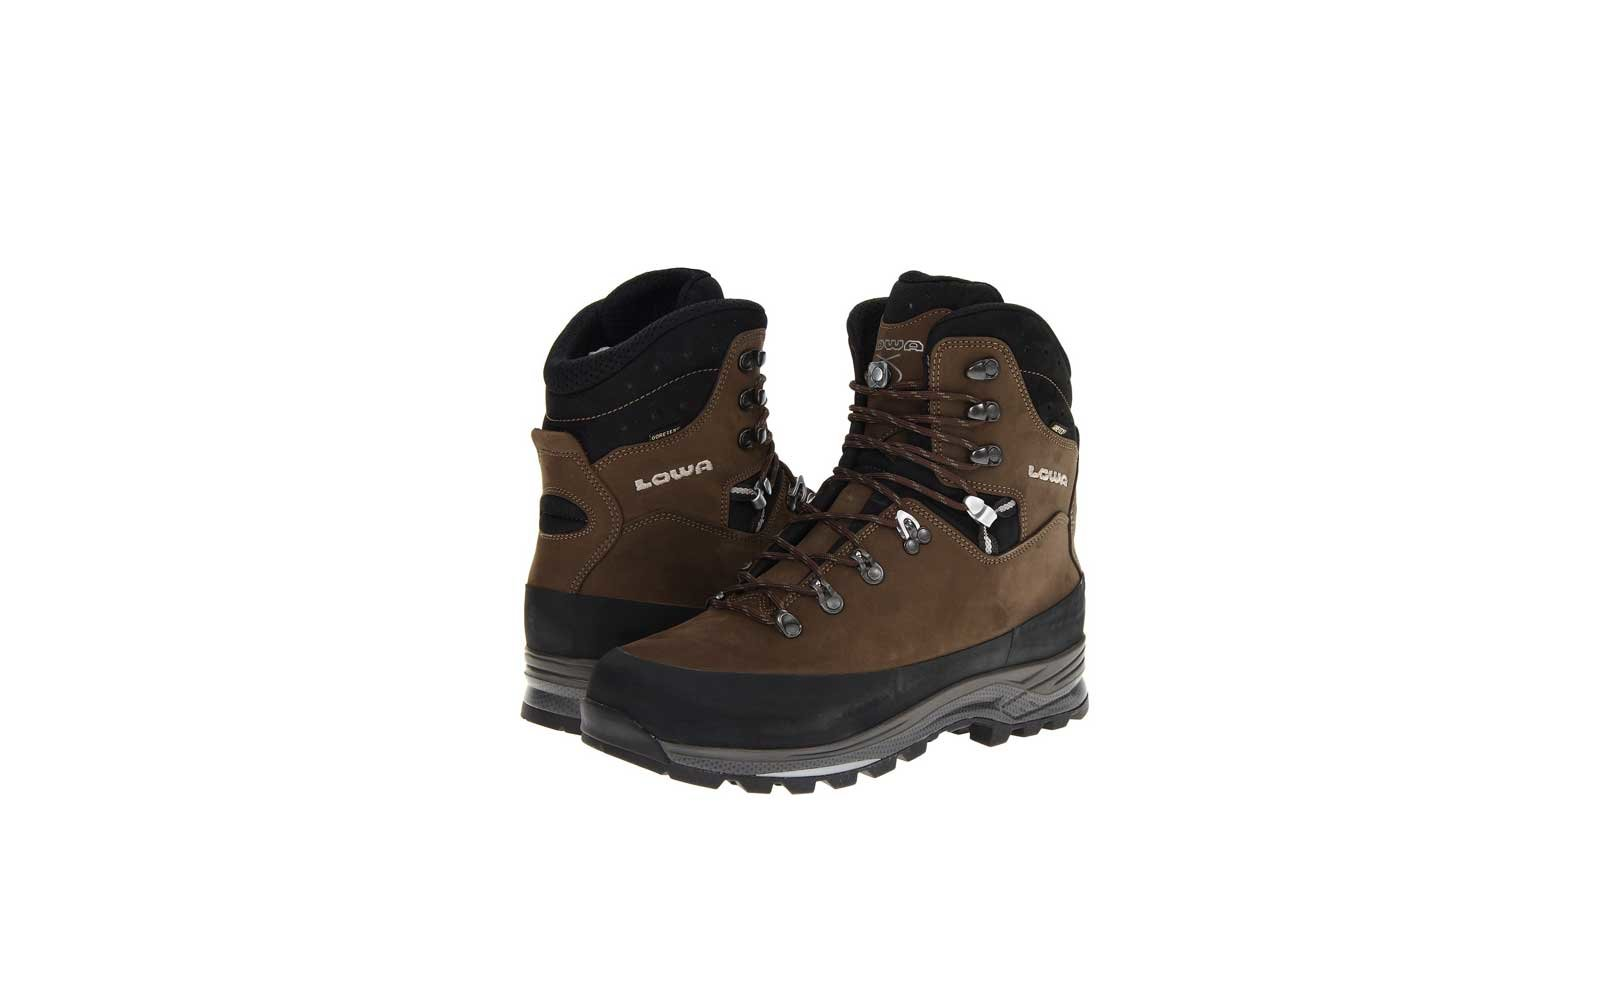 Lowa Tibet Backpacking Boots